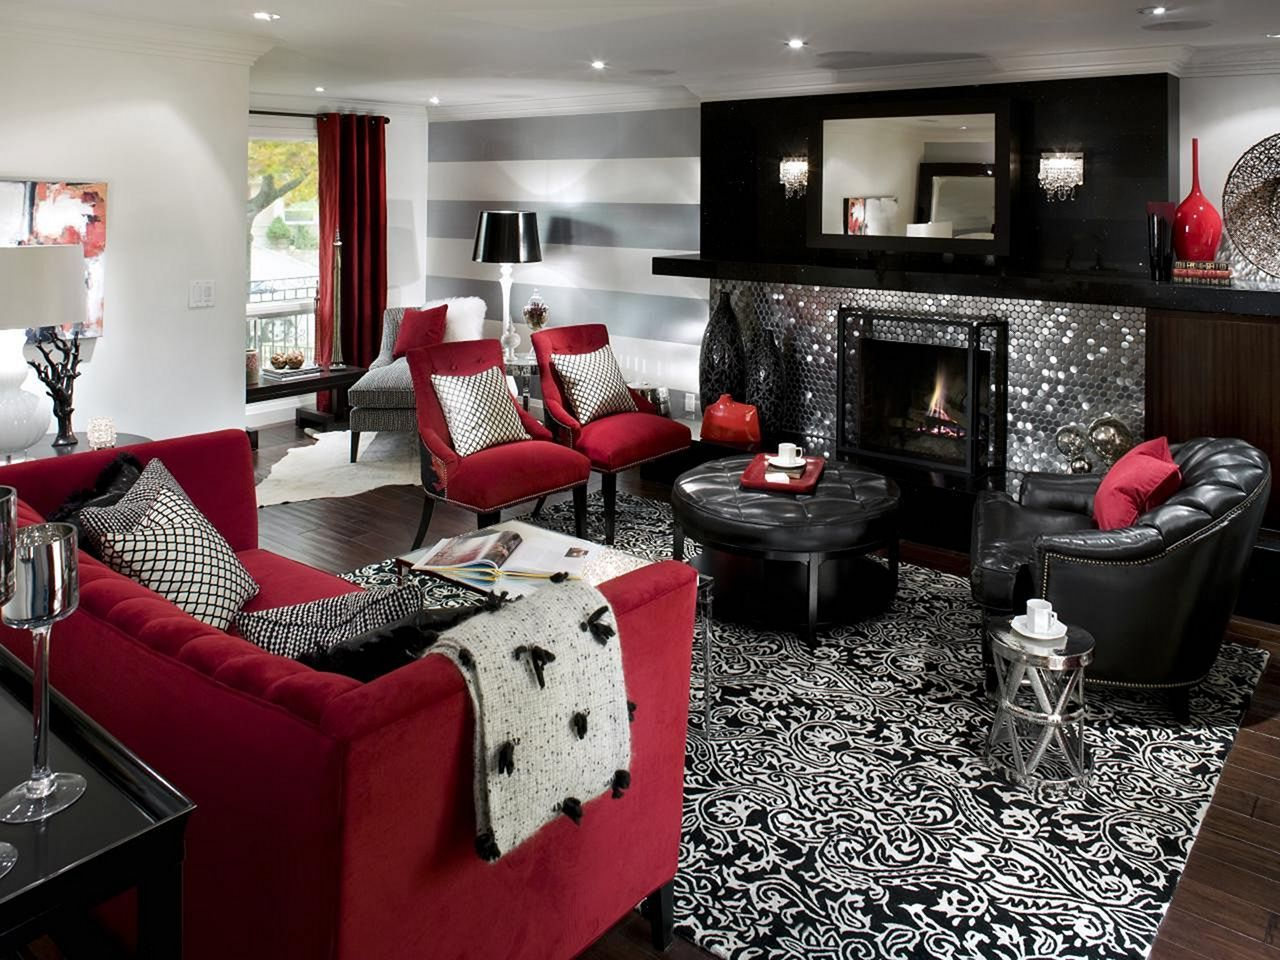 Affordable 25 Black And Red Home Interior Design That Will Inspire You Teracee Living Room Decor